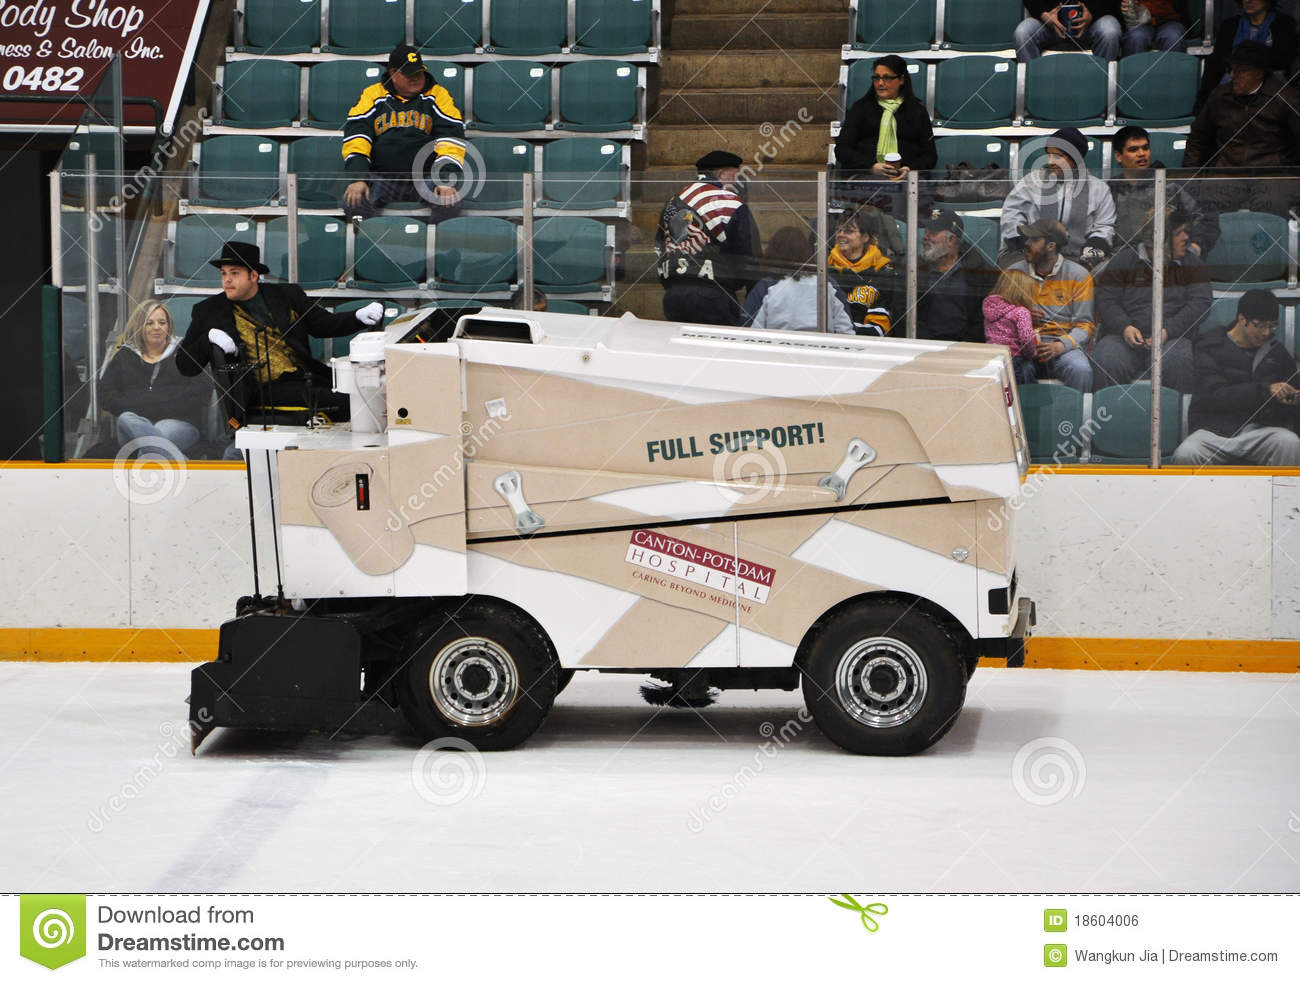 Zamboni in ncaa hockey game editorial photo image 18604006 for Floor zamboni